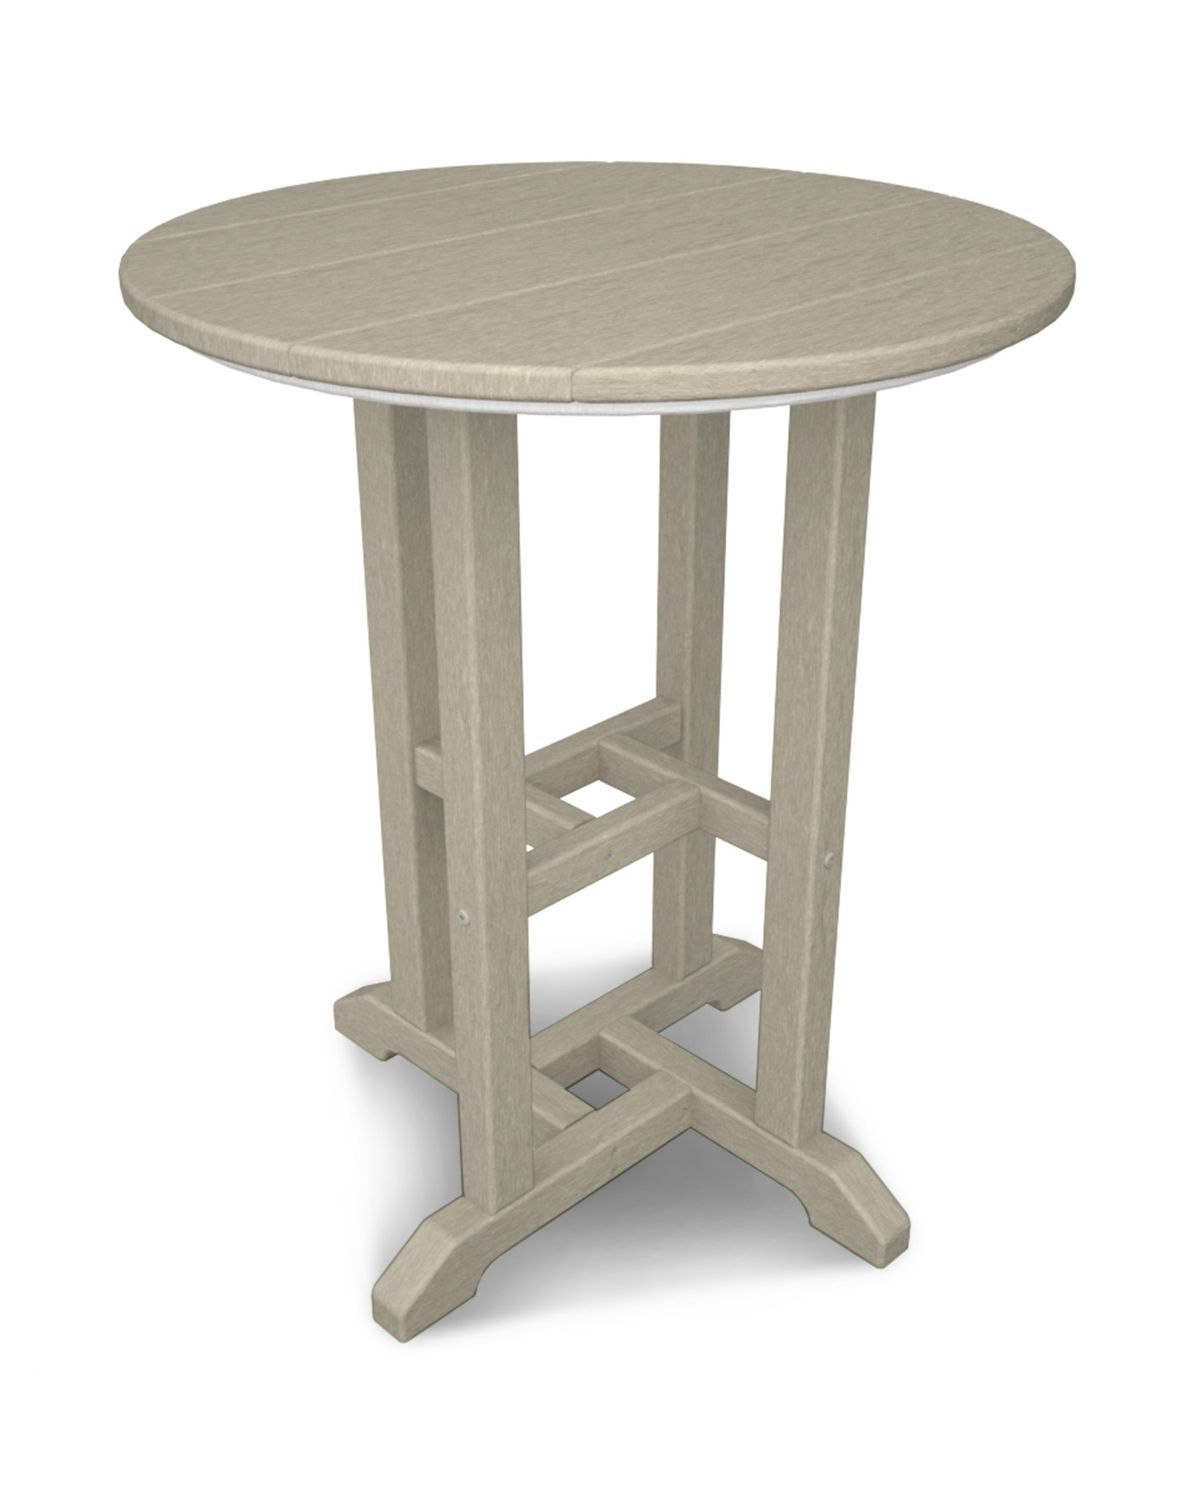 Traditional Dining Table Finish: Sand